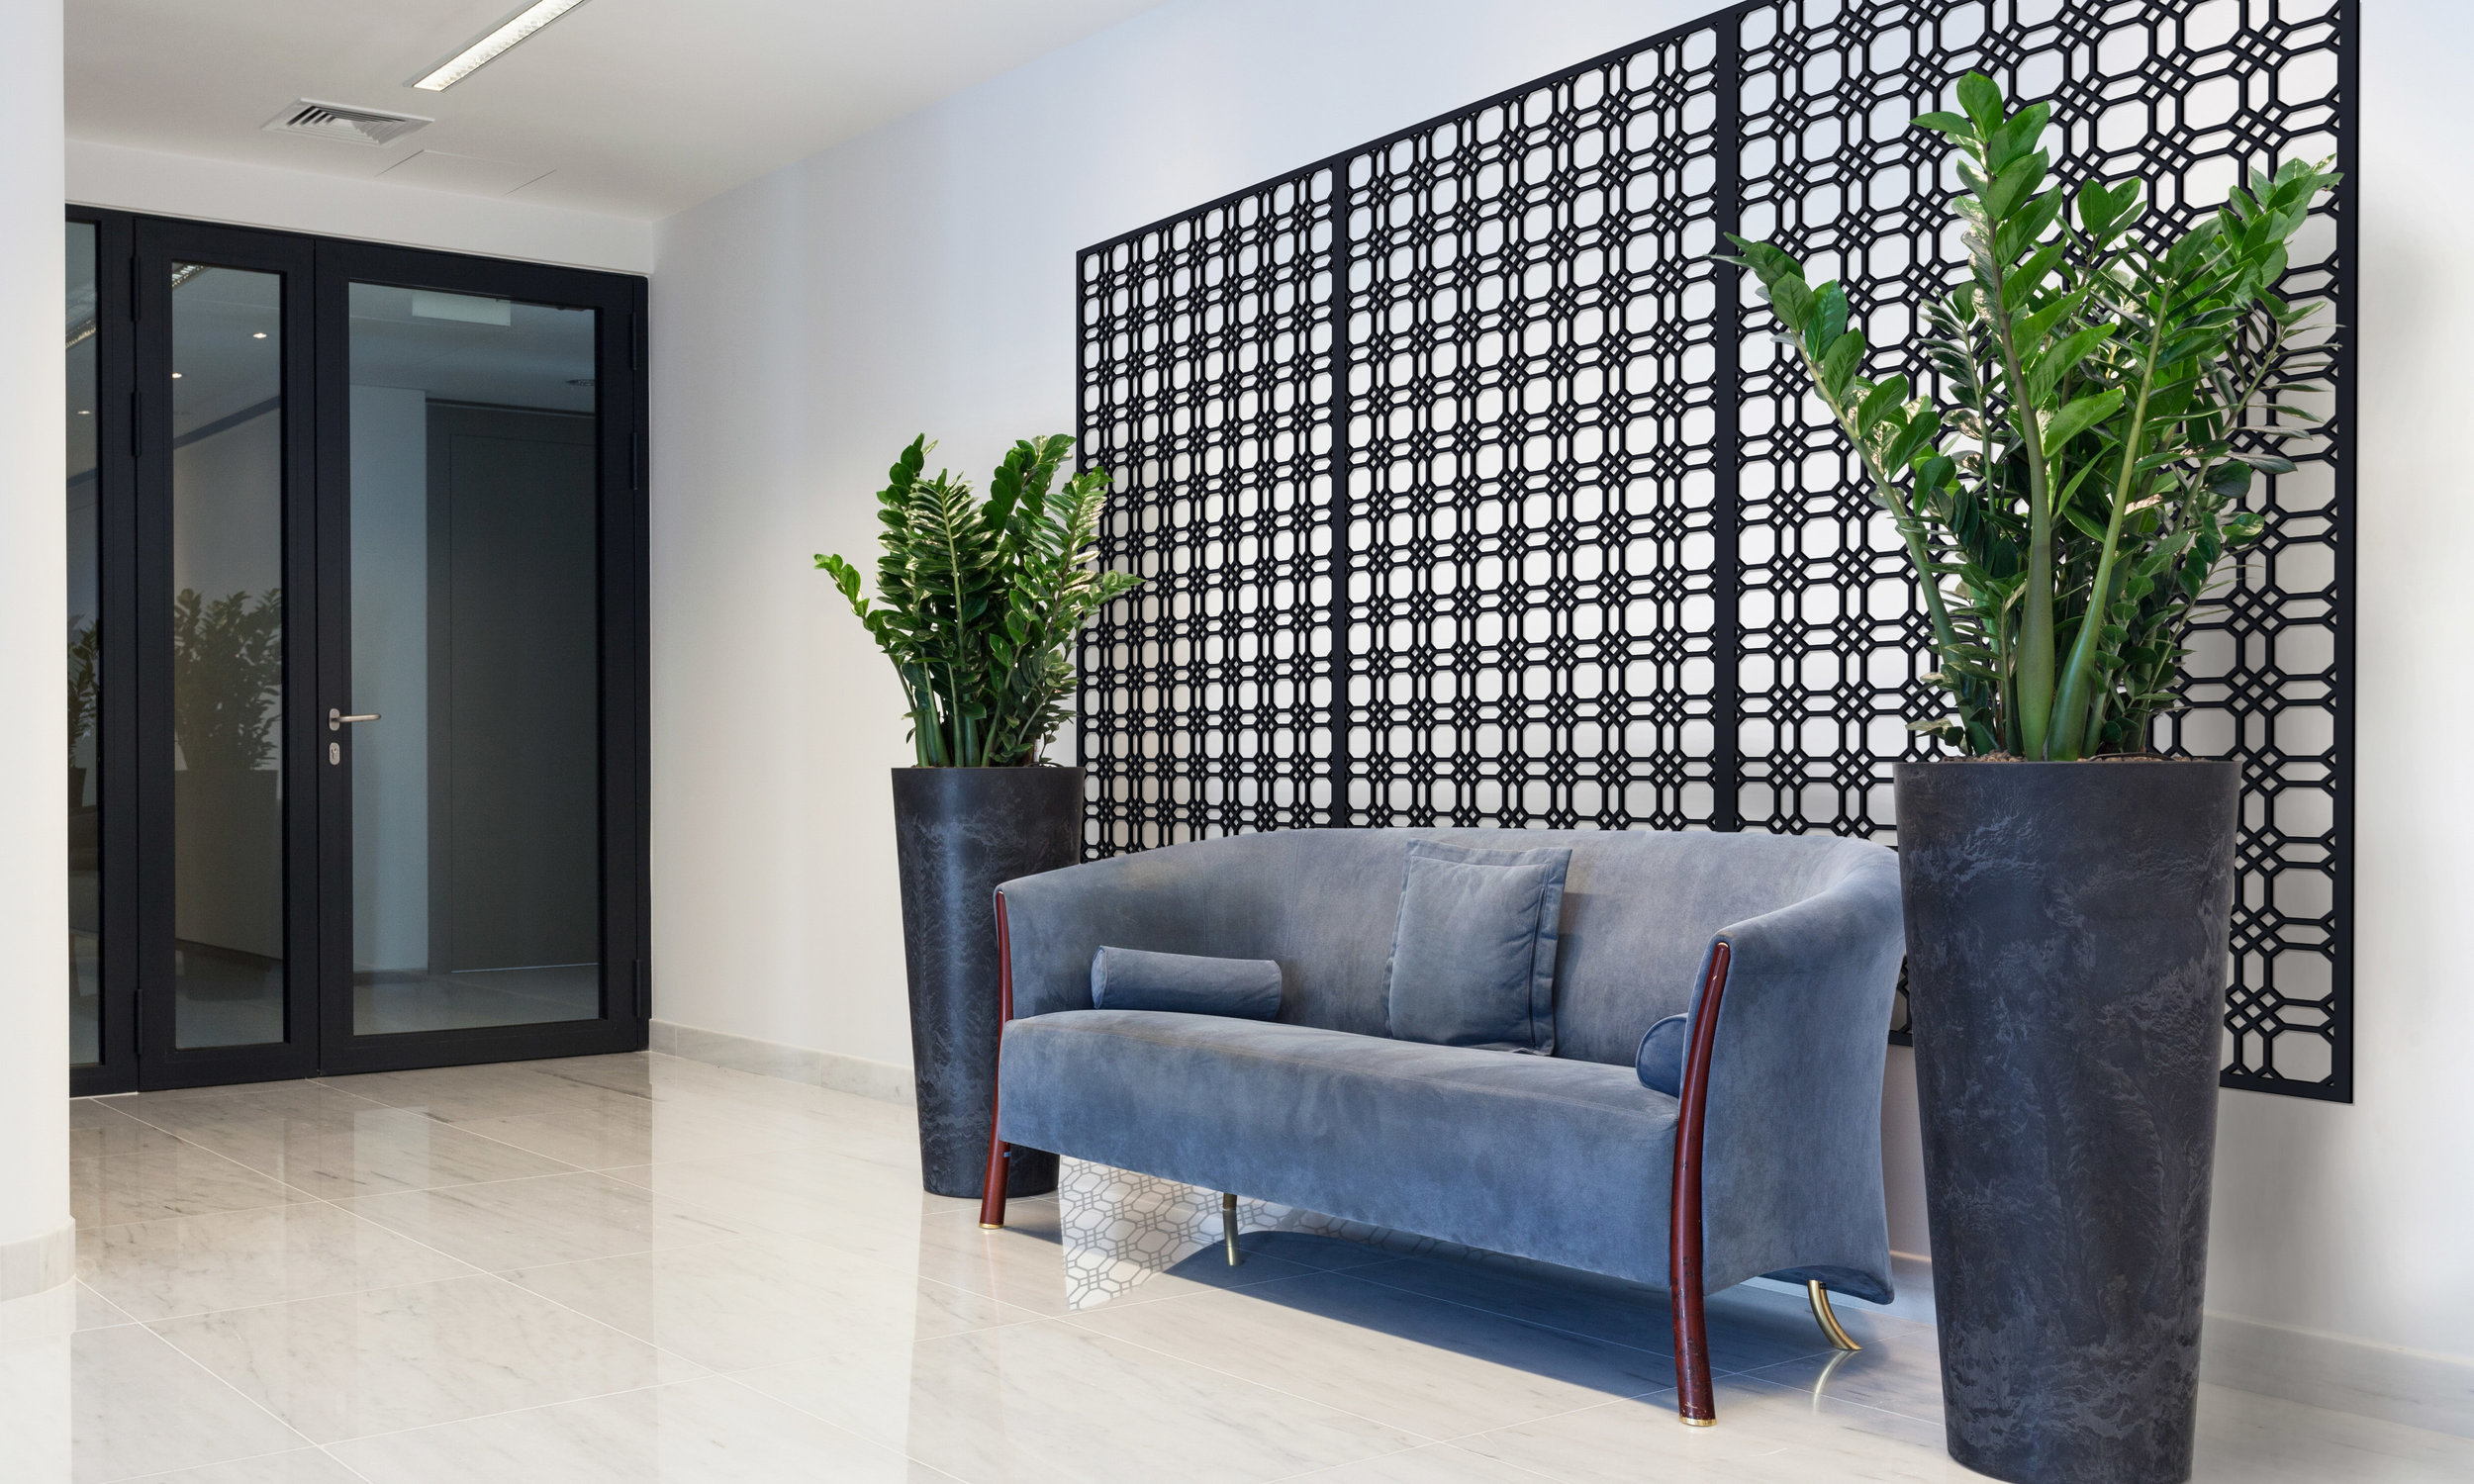 Installation Rendering A   Chicago Grille decorative office wall panel - shown in Cherry wood